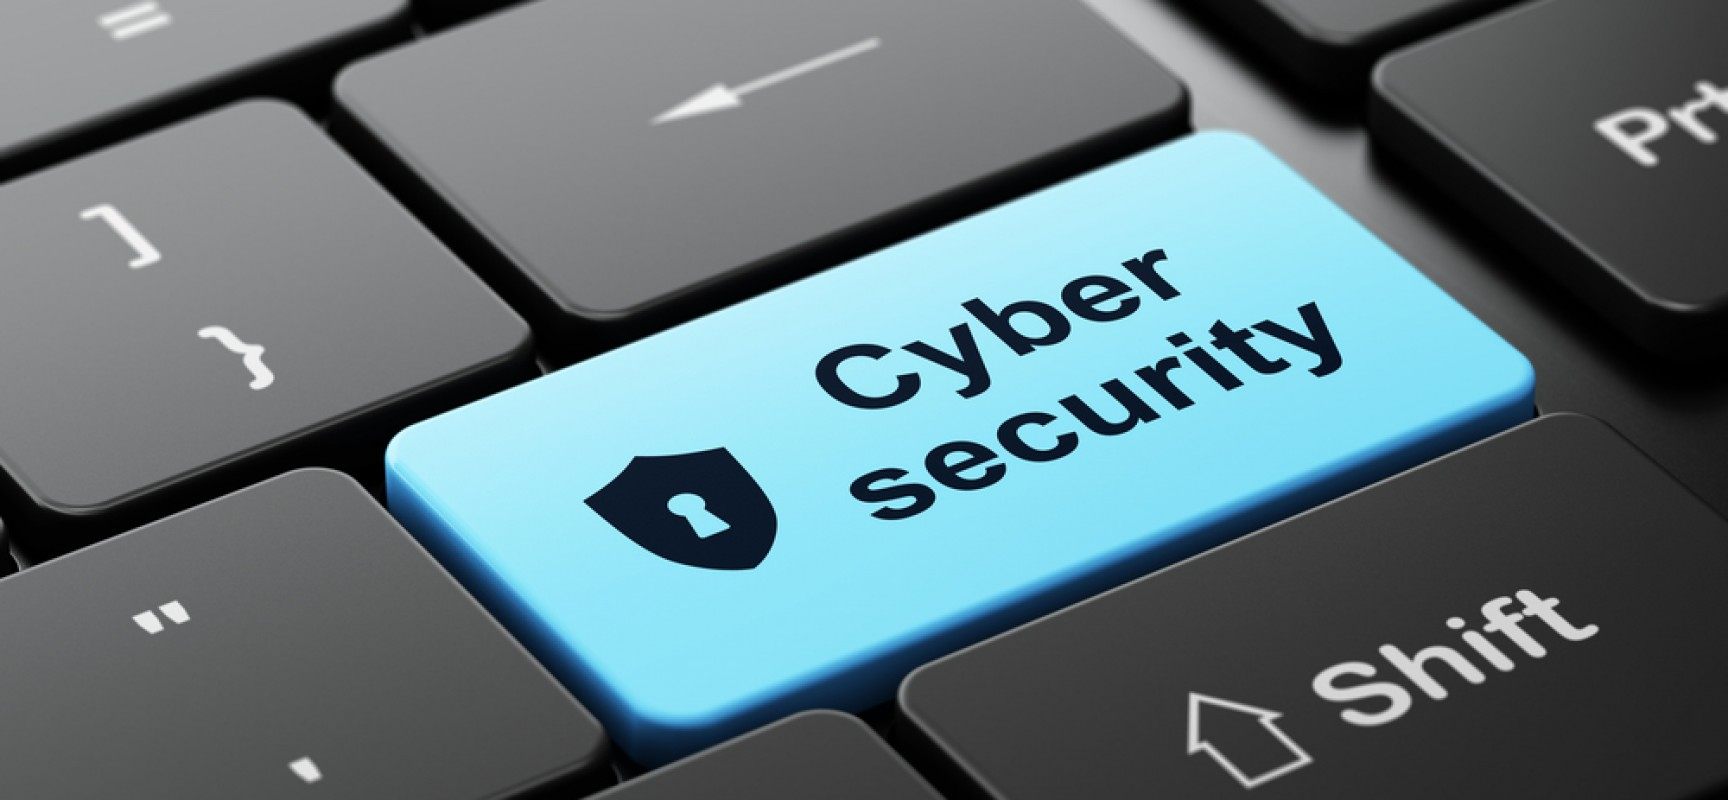 iBoss cyber security